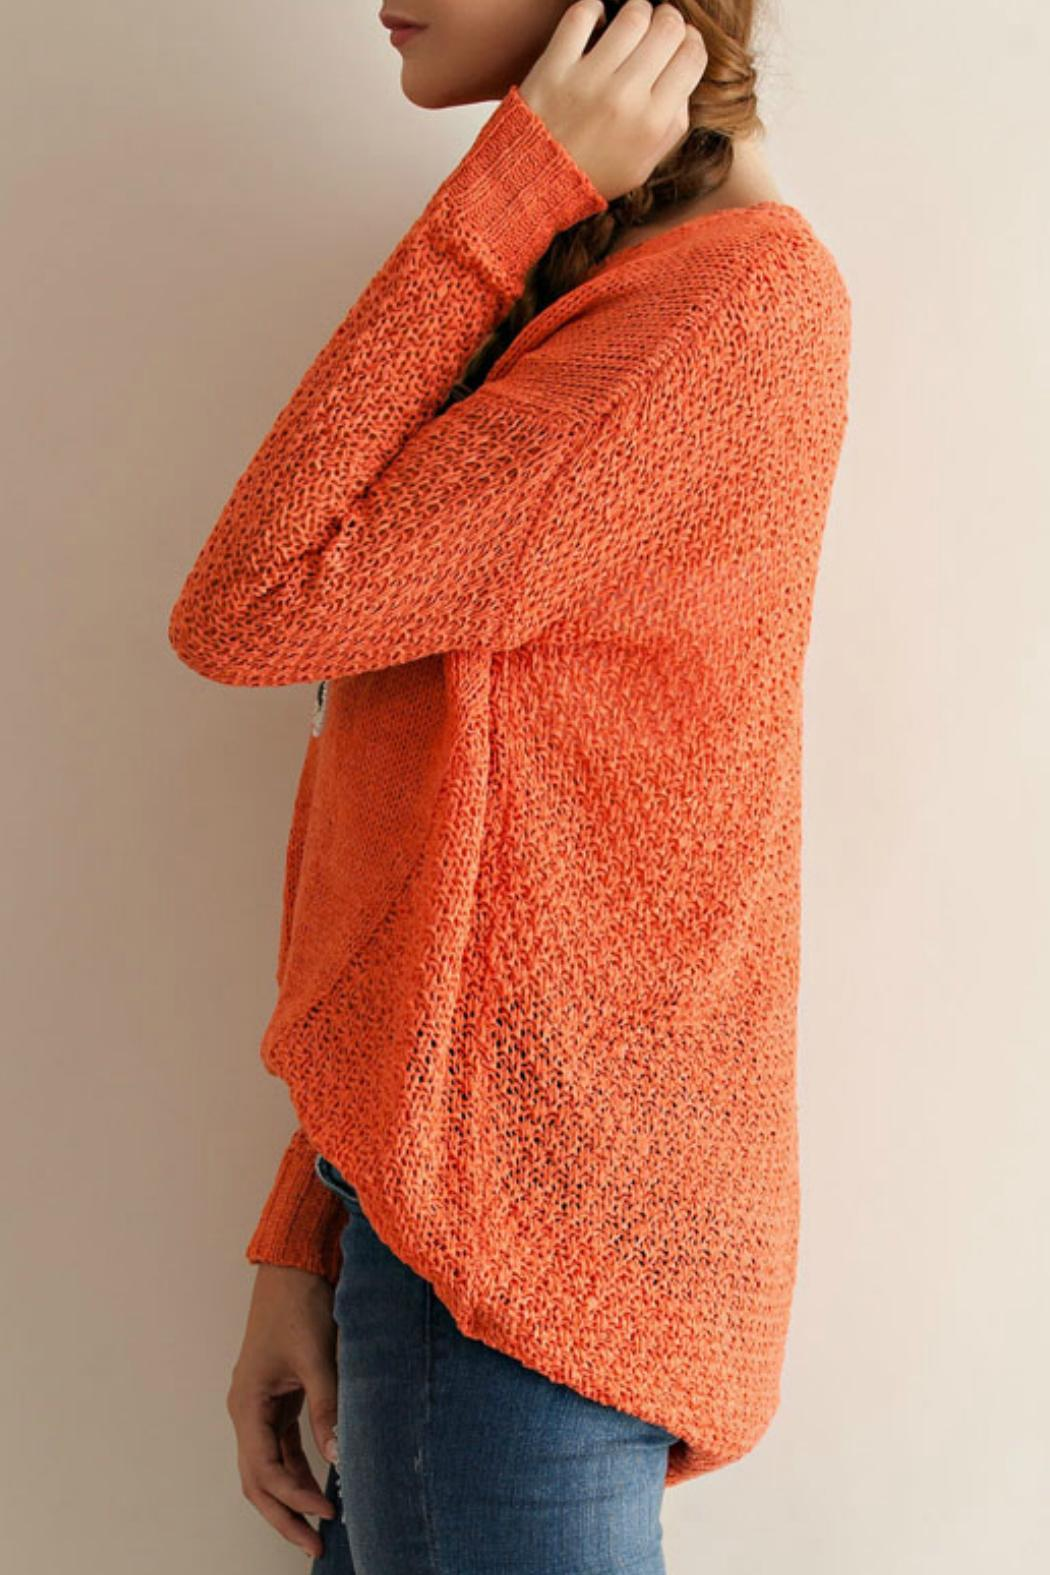 Open weave knitting patterns comsar for entro open weave knit sweater from montana by foxwood boutique shoptiques bankloansurffo Images